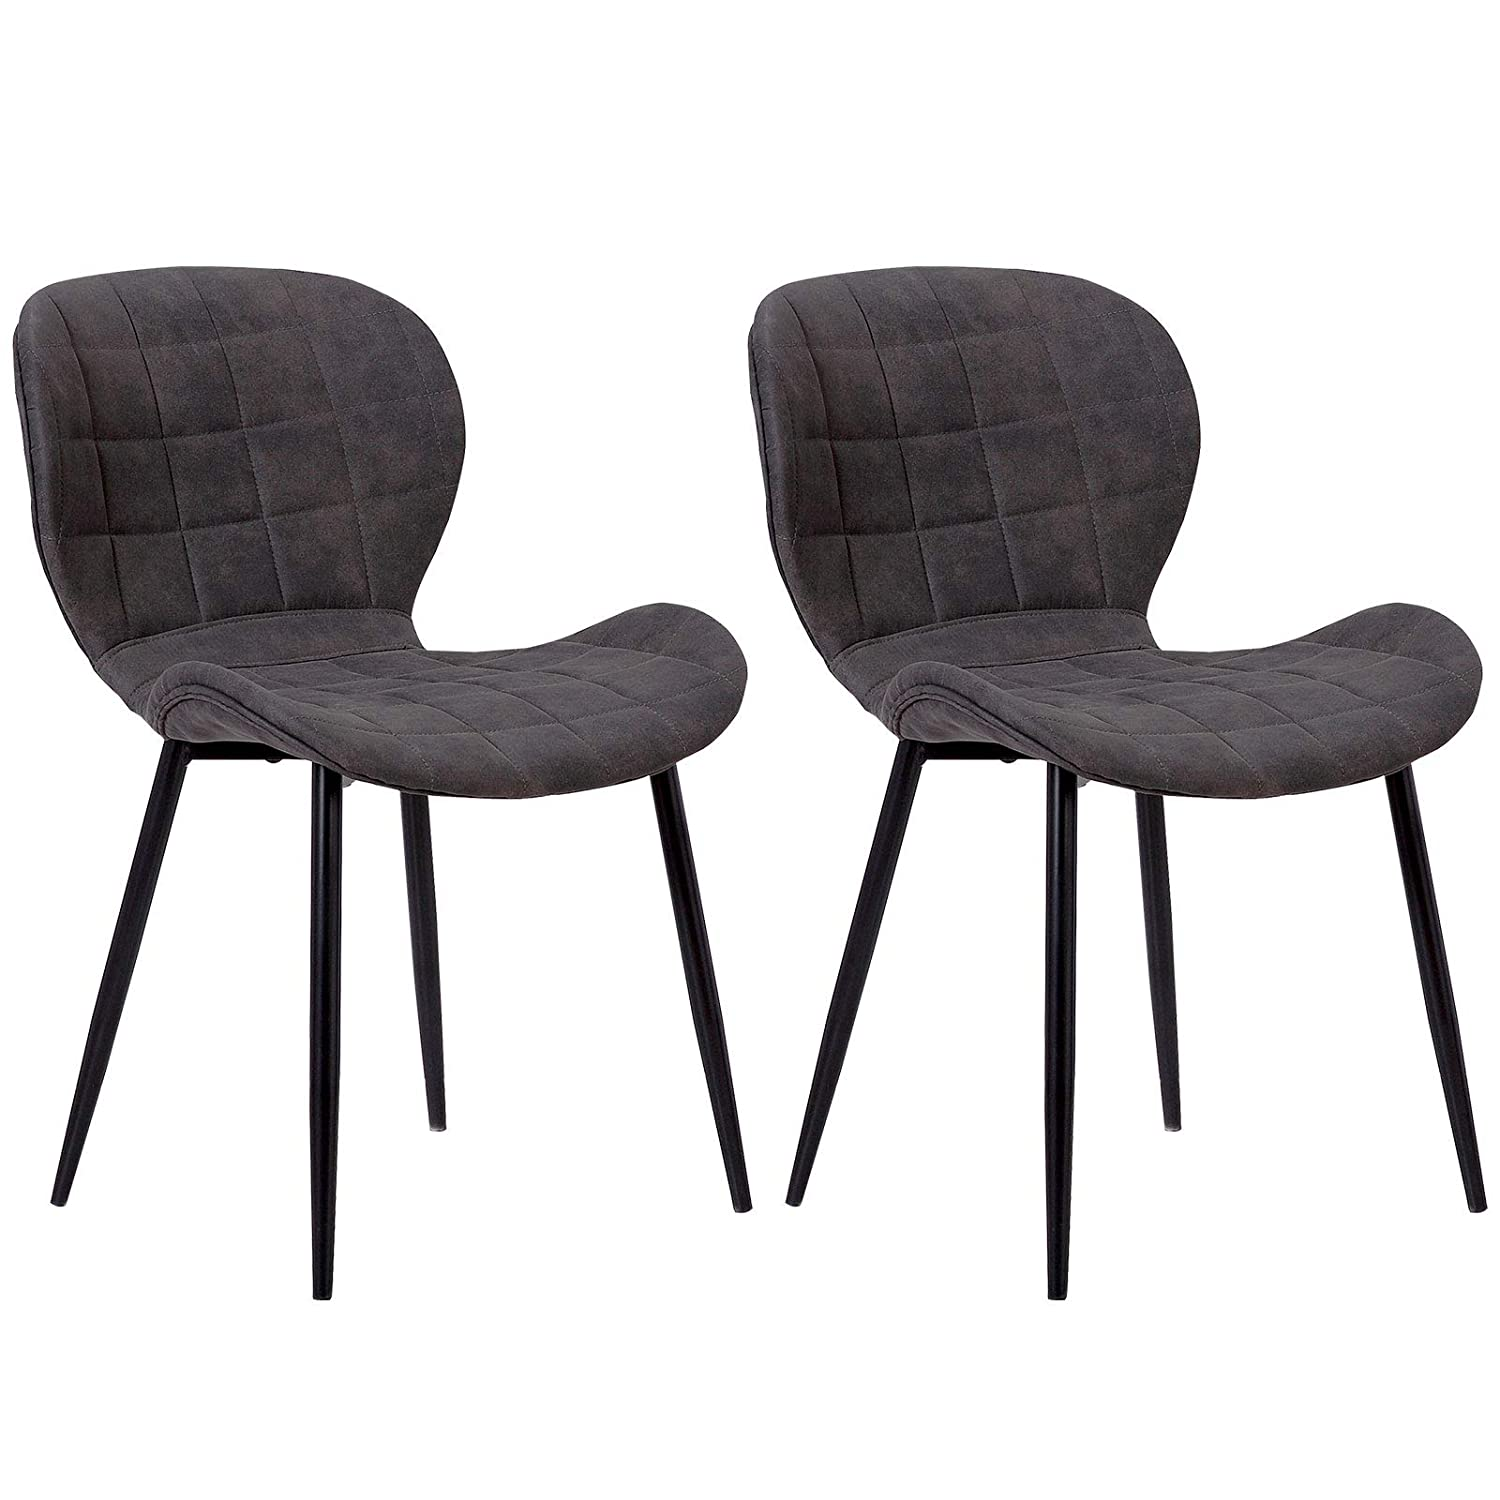 WOLTU Kitchen Dining Chairs Anthracite Set of 2 pcs Kitchen Counter Office Lounge Living Room Chairs with Back and Solid Metal Legs